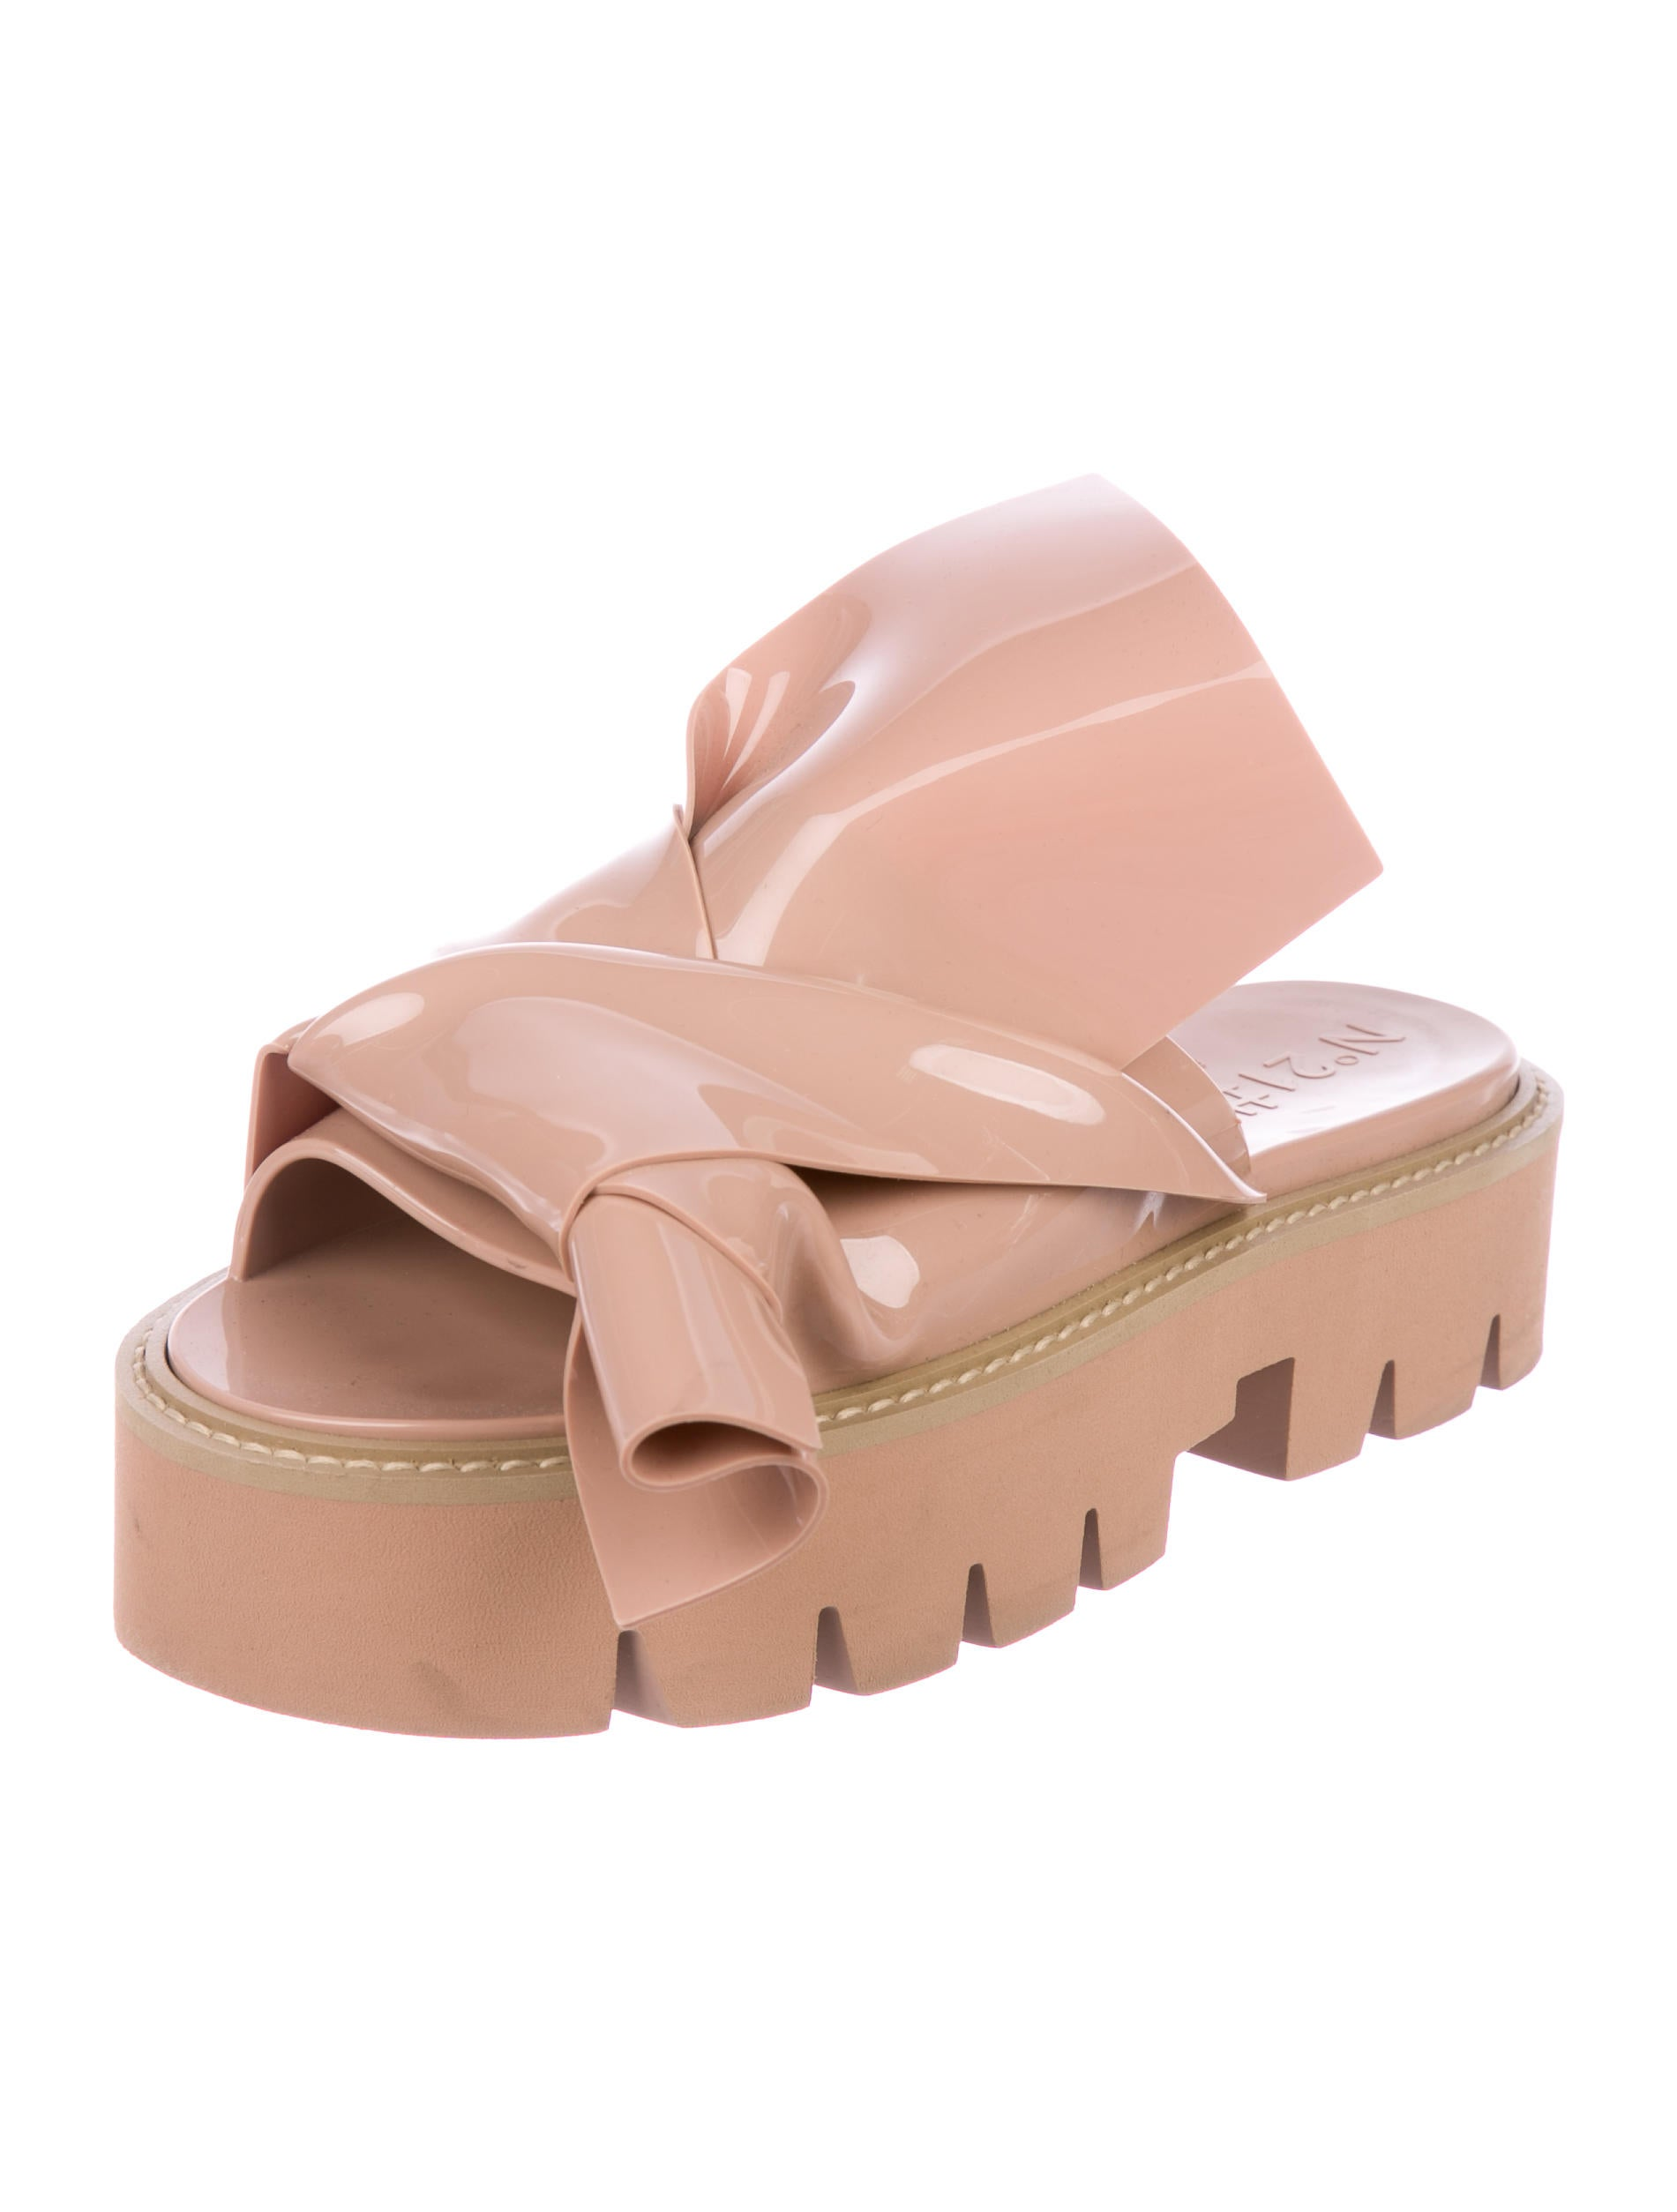 cheapest price cheap price No. 21 Rubber Slide Sandals browse clearance latest collections 42xQptWyJm